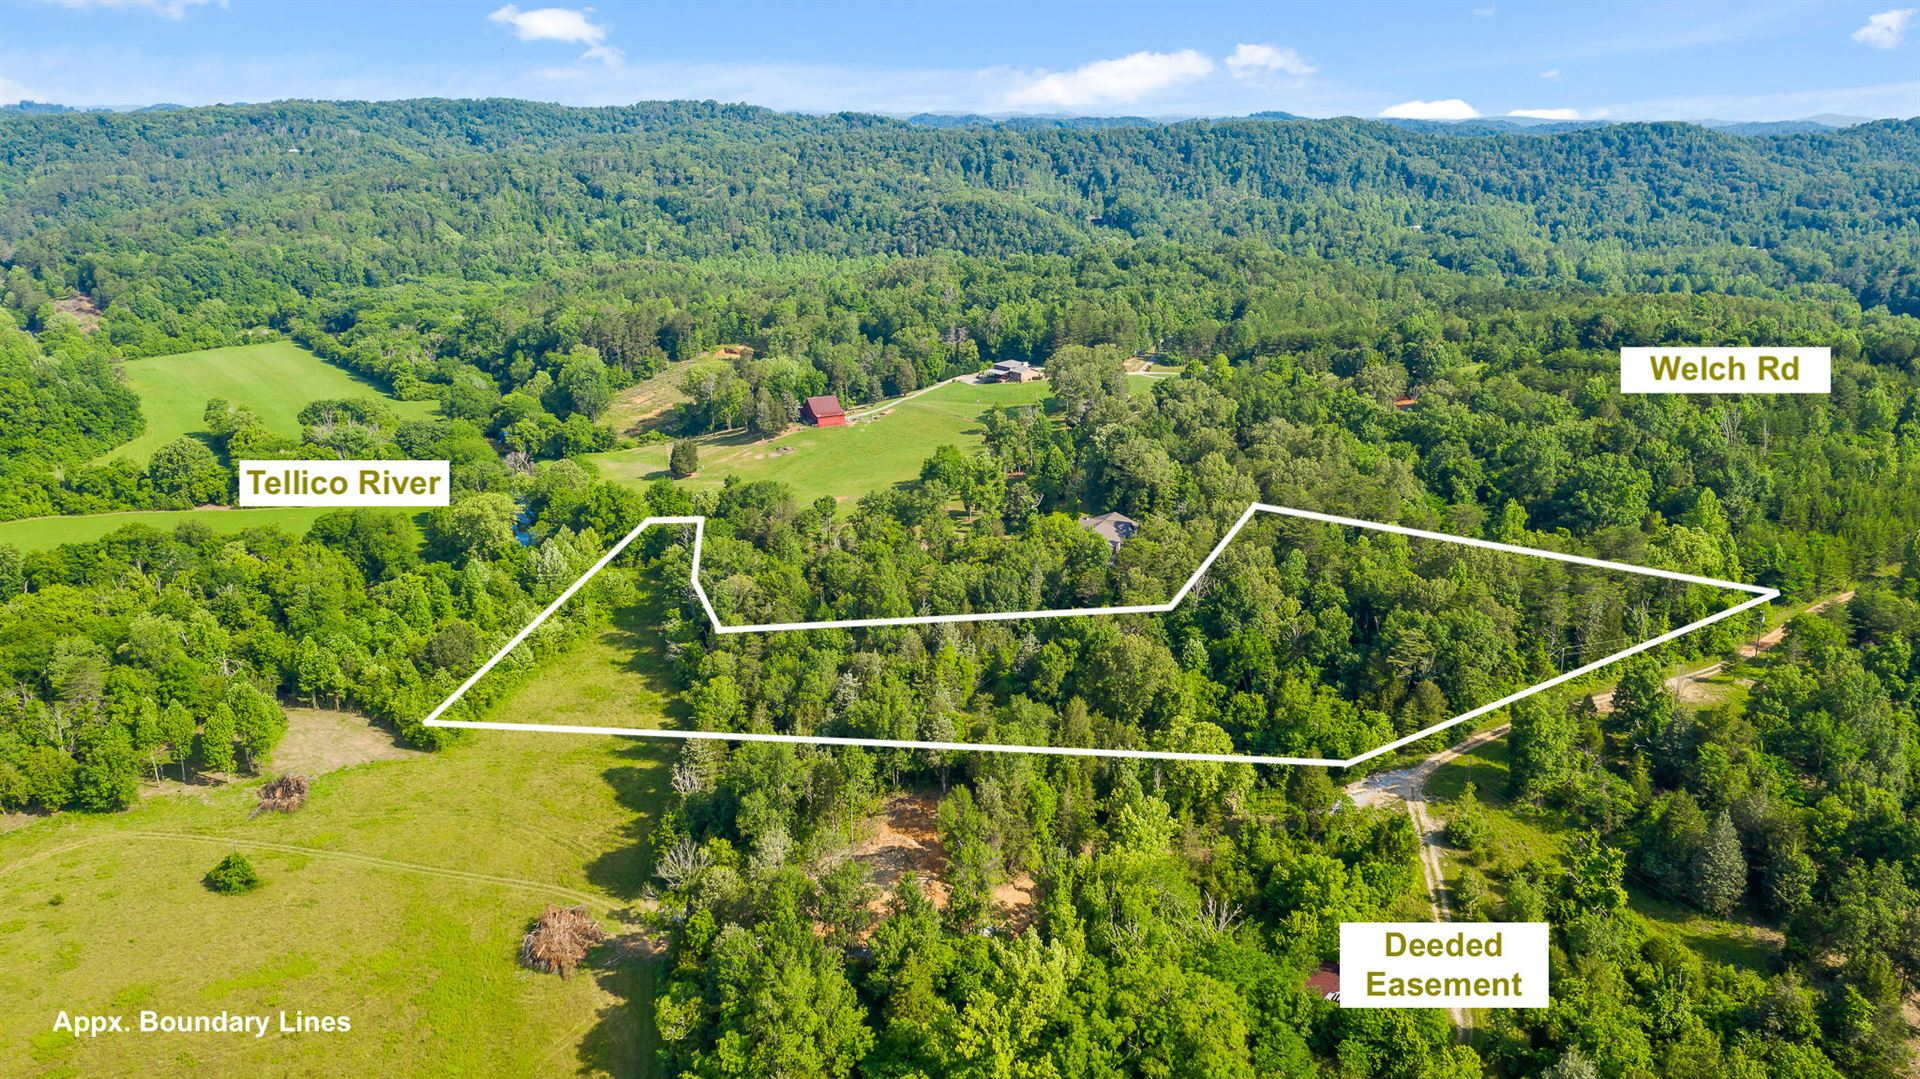 Photo for 0 Welch Rd, Tellico Plains, TN 37385 (MLS # 1337864)